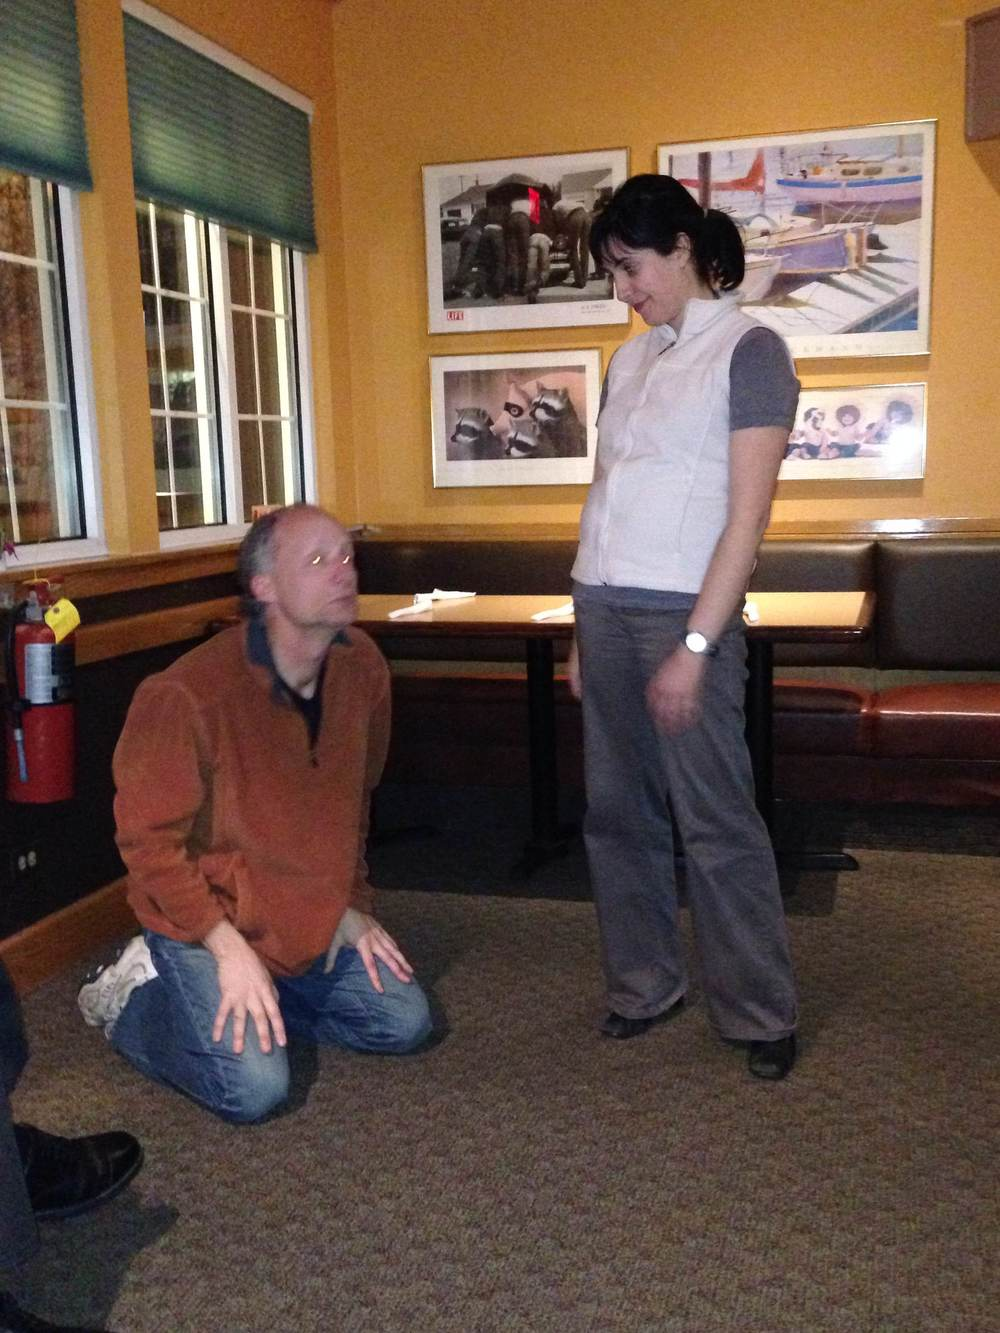 Richard O., and Kimberly G. acting out an IMPROV scene